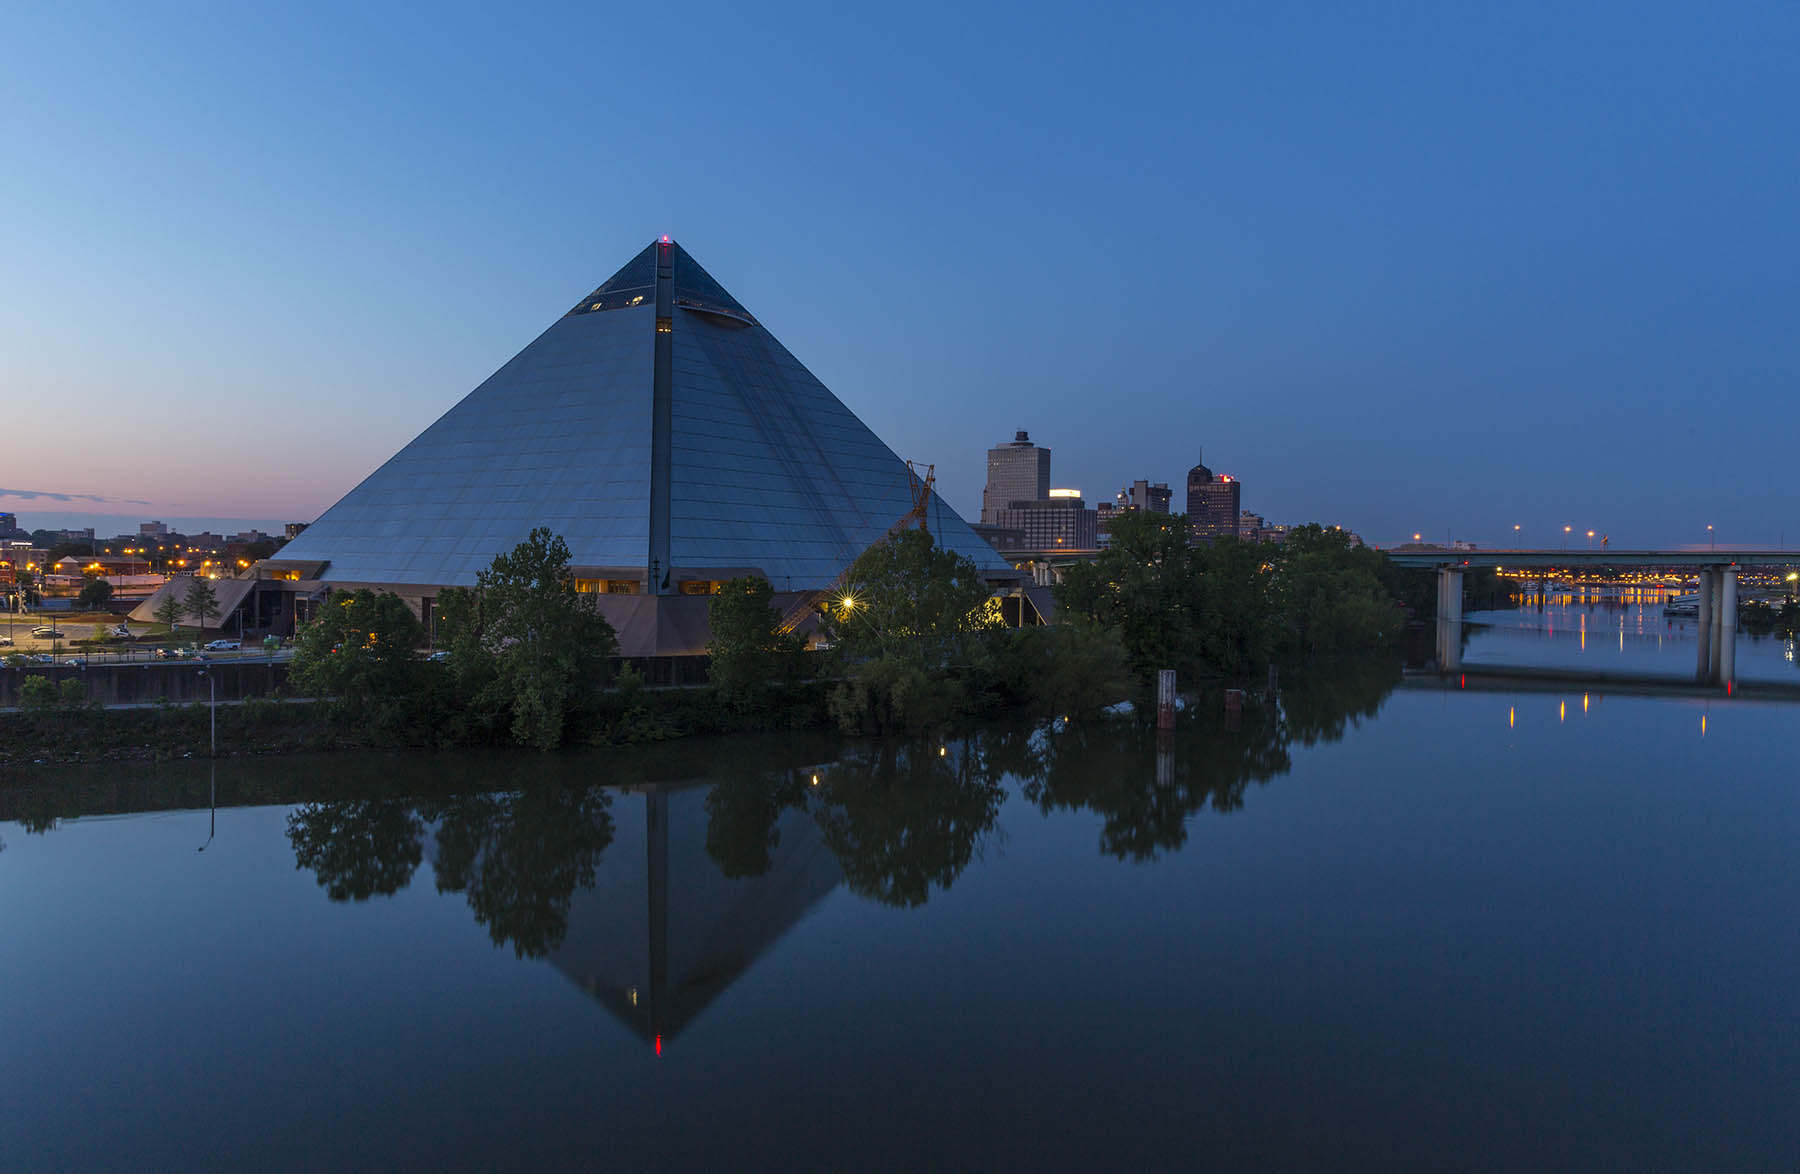 The Pyramid overlooking the Mississippi